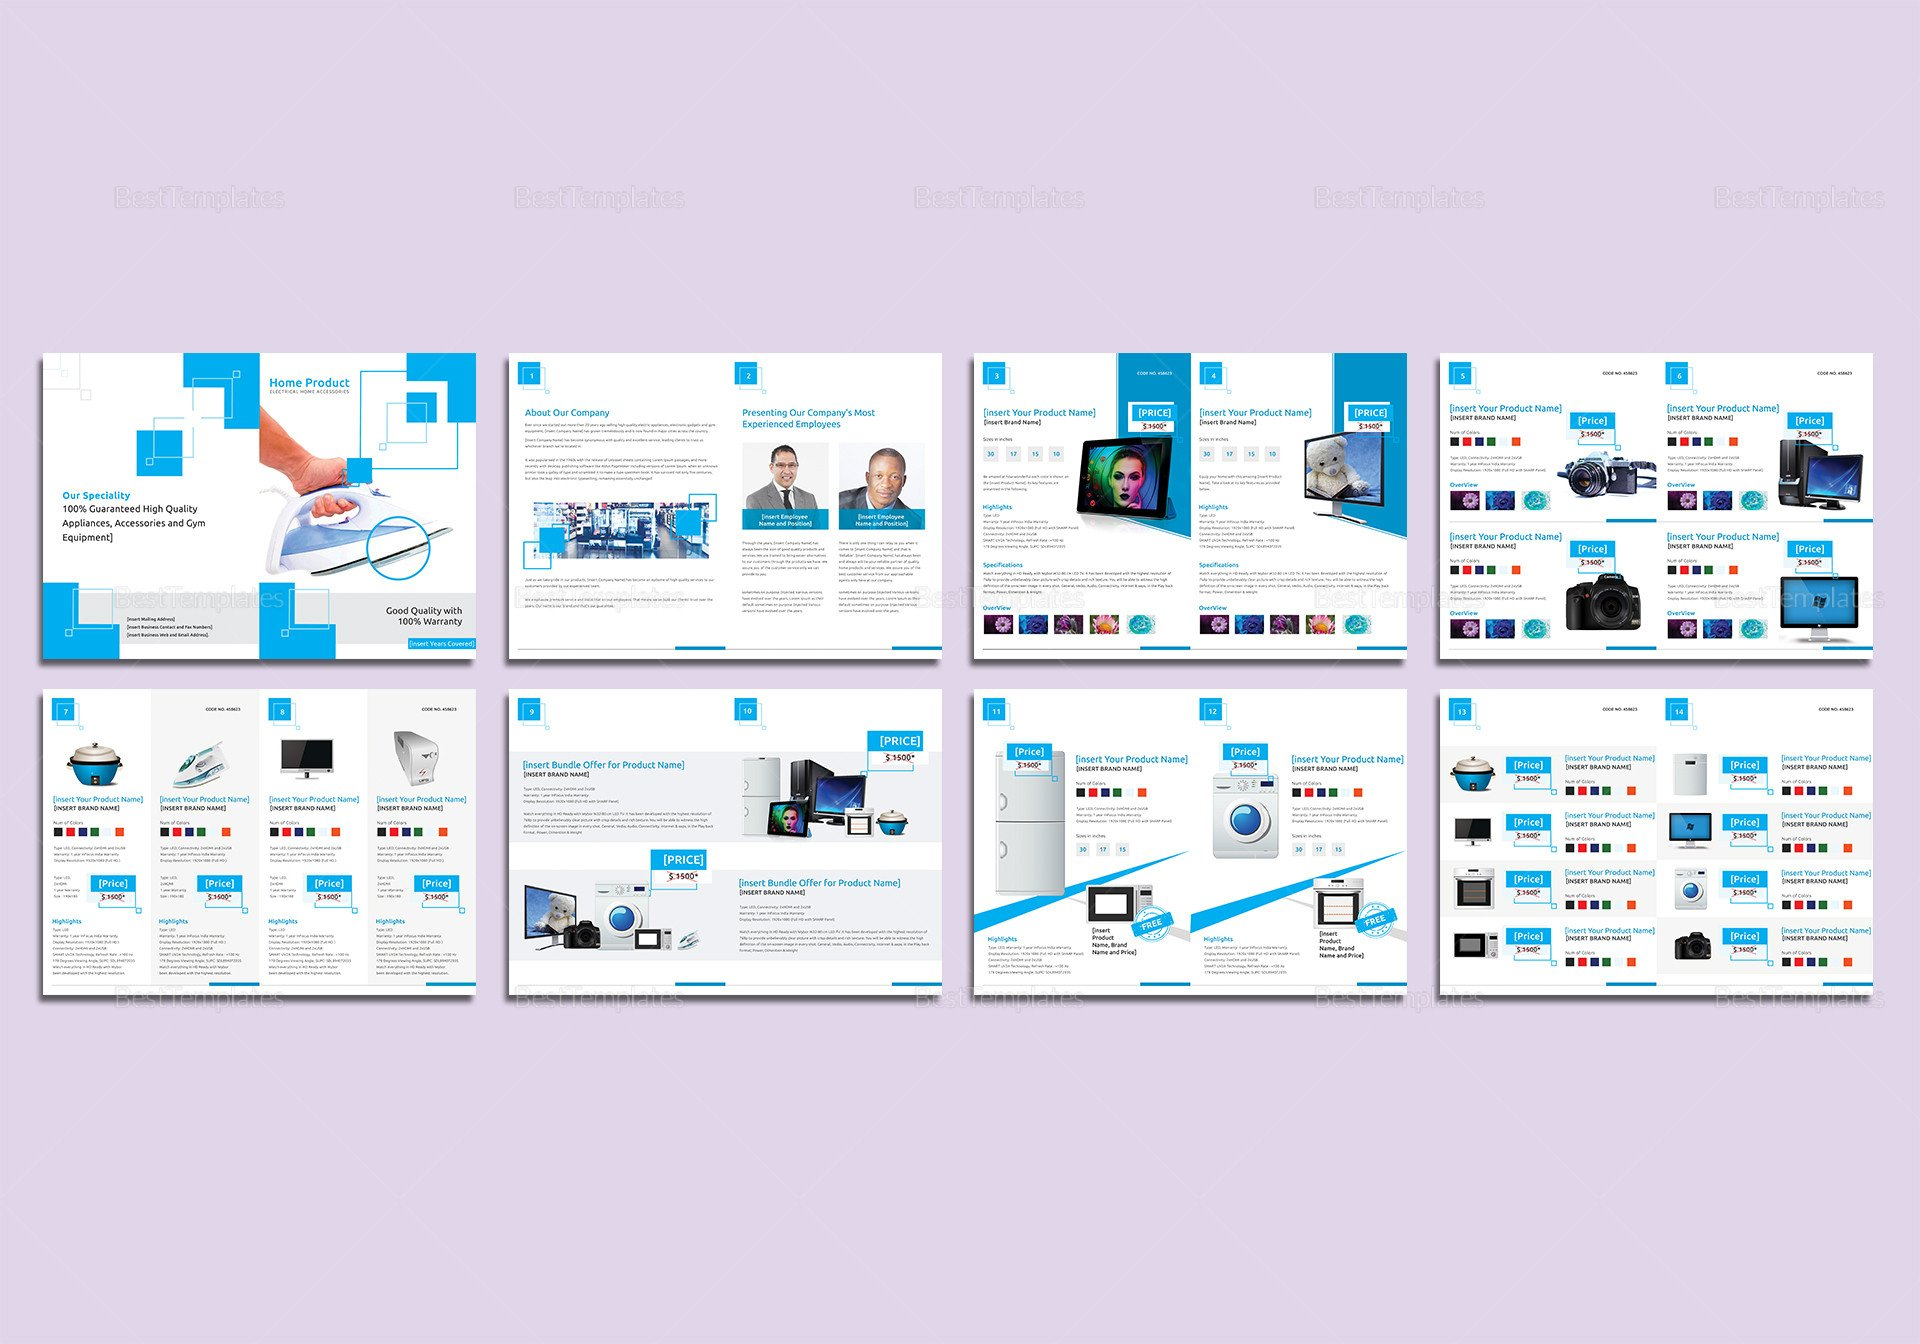 Product Catalogue Template Word Home Product Catalog Template In Psd Word Publisher